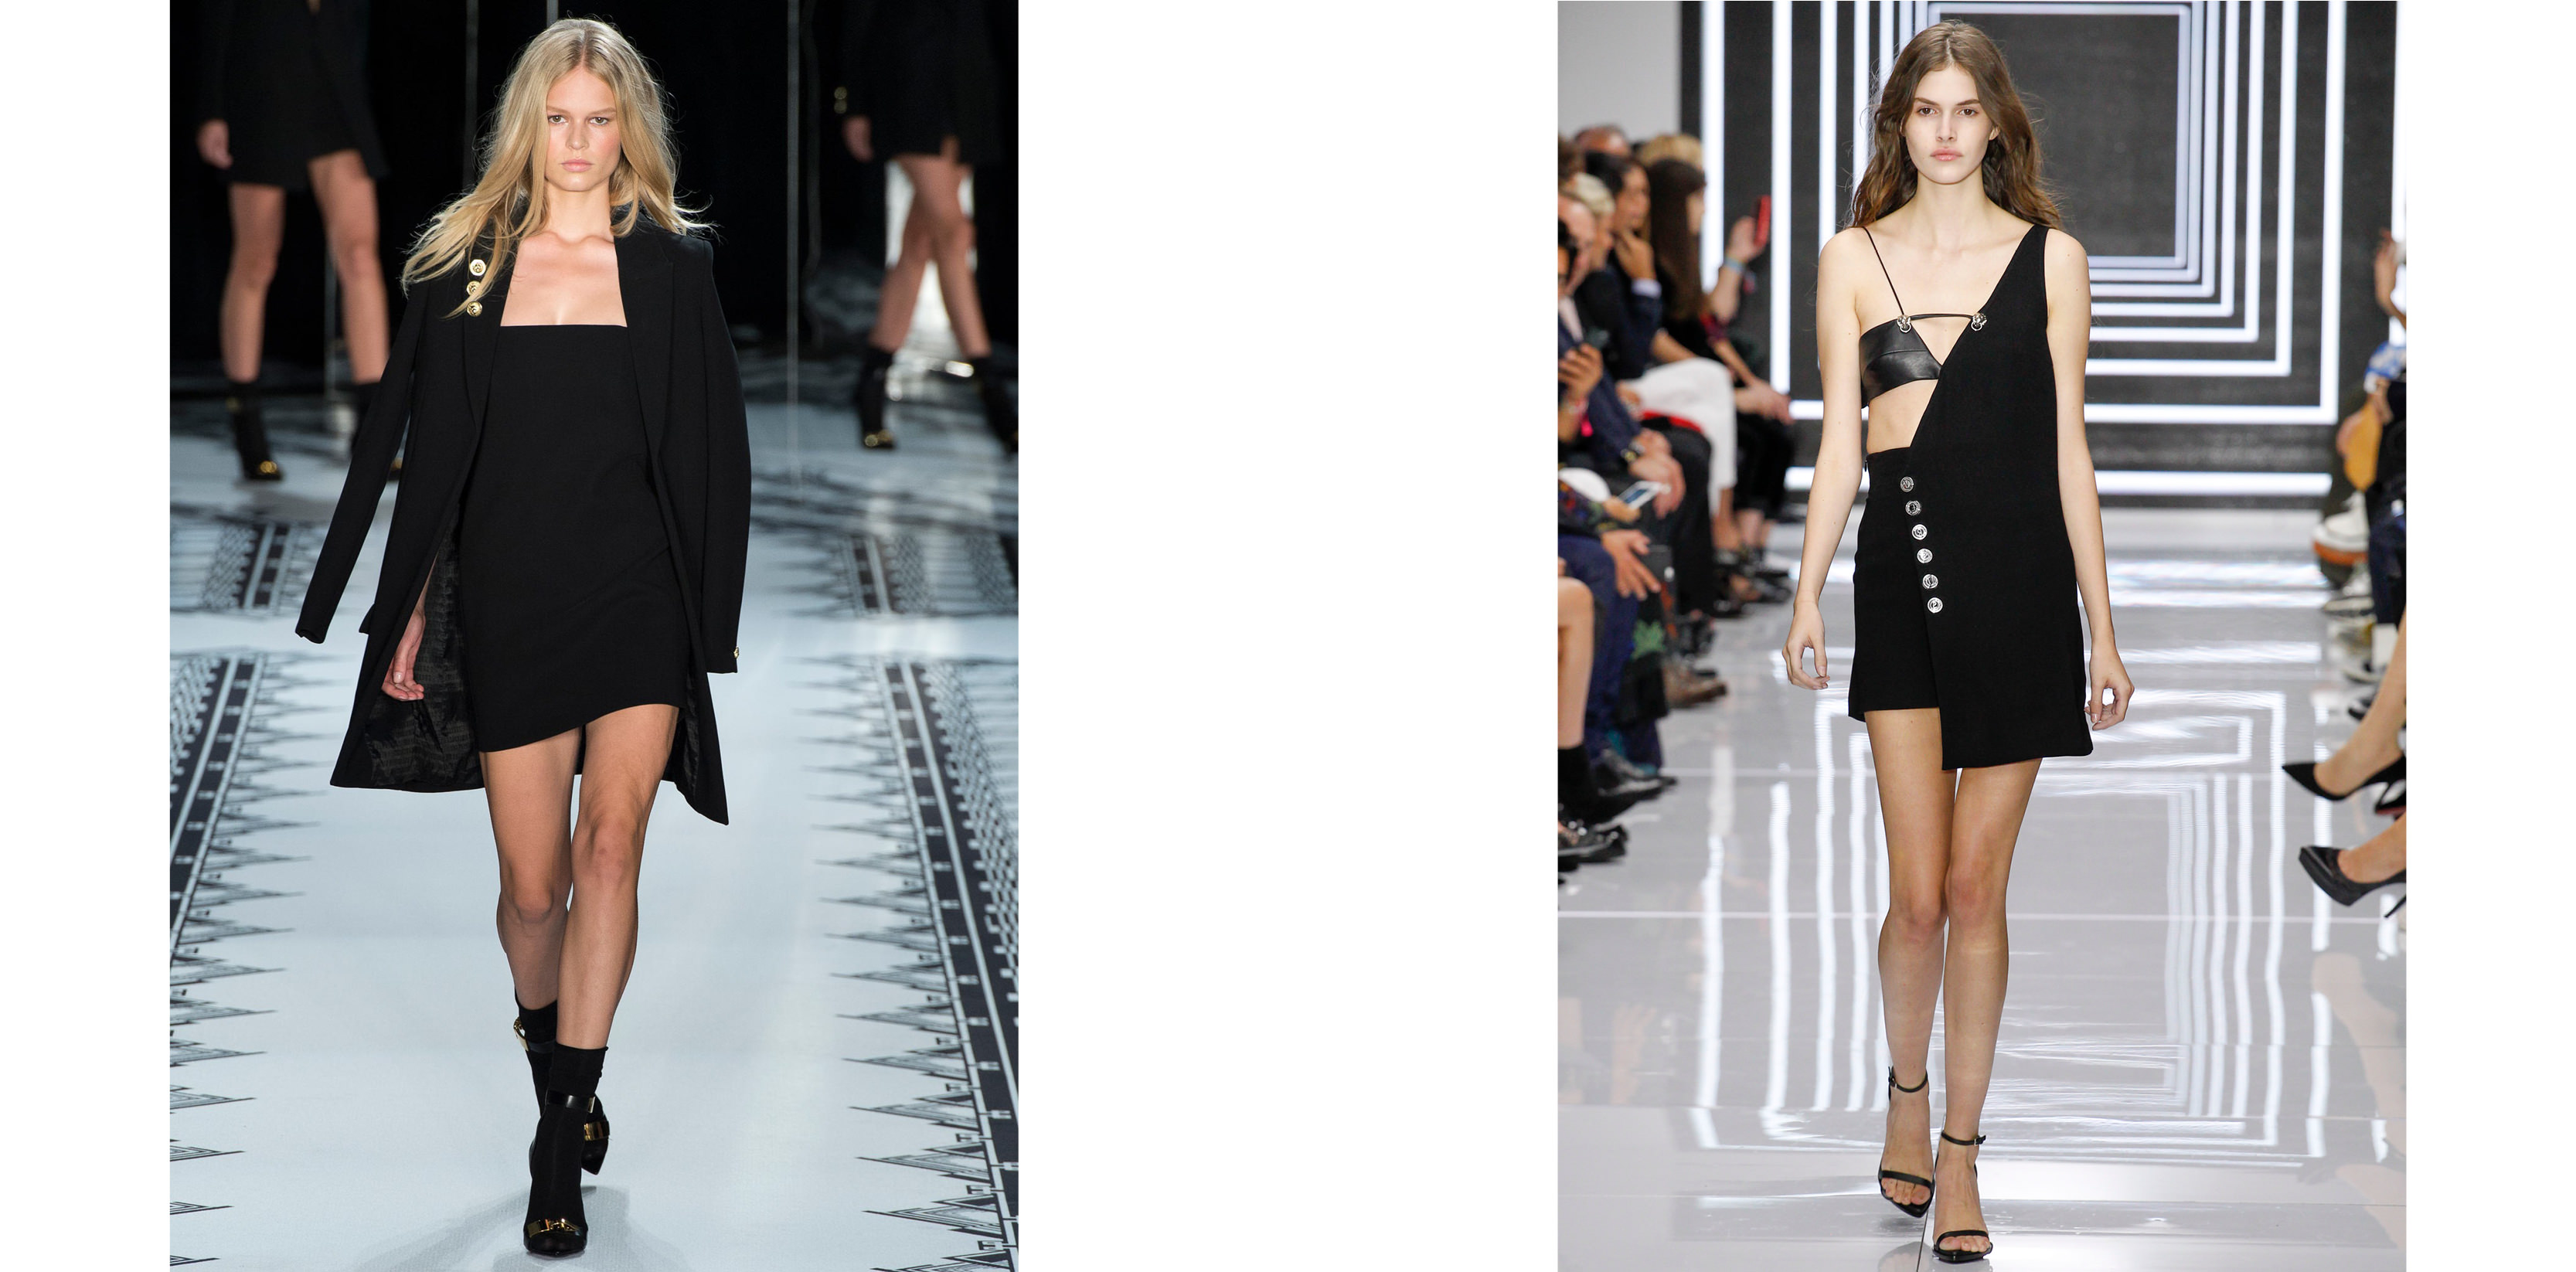 Left: Anna Ewers for Versus Versace fall-winter 2015-2016 Right: Vanessa Moody for Versus Versace spring-summer 2016   Anthony Vaccarello for Versus:   When, in January 2015, he was appointed head of design at Versus, the house of Versace's little sister, Anthony Vaccarello joined the fabulous Italian house and found in Donatella Versace his perfect godmother, bringing his teenage dream to life. Re-injecting the legendary fun back into the line by giving it his sense of geometry and line, Anthony Vaccarello delivered four extremely successful collections.  Putting his hand to the prints and having fun with the antique symbols that make up the Versace vocabulary, he created clothes that were both desirable and easy to wear.   Anthony Vaccarello at Yves Saint Laurent:  A few seasons under the leadership of Hedi Slimane was enough to impose the spirit of black and rock as the new codes at Yves Saint Laurent. Anthony Vaccarello's passion for dark colours and sexy looks certainly won't displease the clientele that swarm the boutiques like a temple. At Versus, the Italo-Belgian designer showed his capacity to build complete wardrobes in a more commercial spirit than with his own brand name. Ultimately he also proved he could turn his hand to menswear. So here he is at Yves Saint Laurent, aged 33, with the doors of glory flung wide open.      Check out Anthony Vaccarello's exclusive playlist for Numéro.     By Delphine Roche